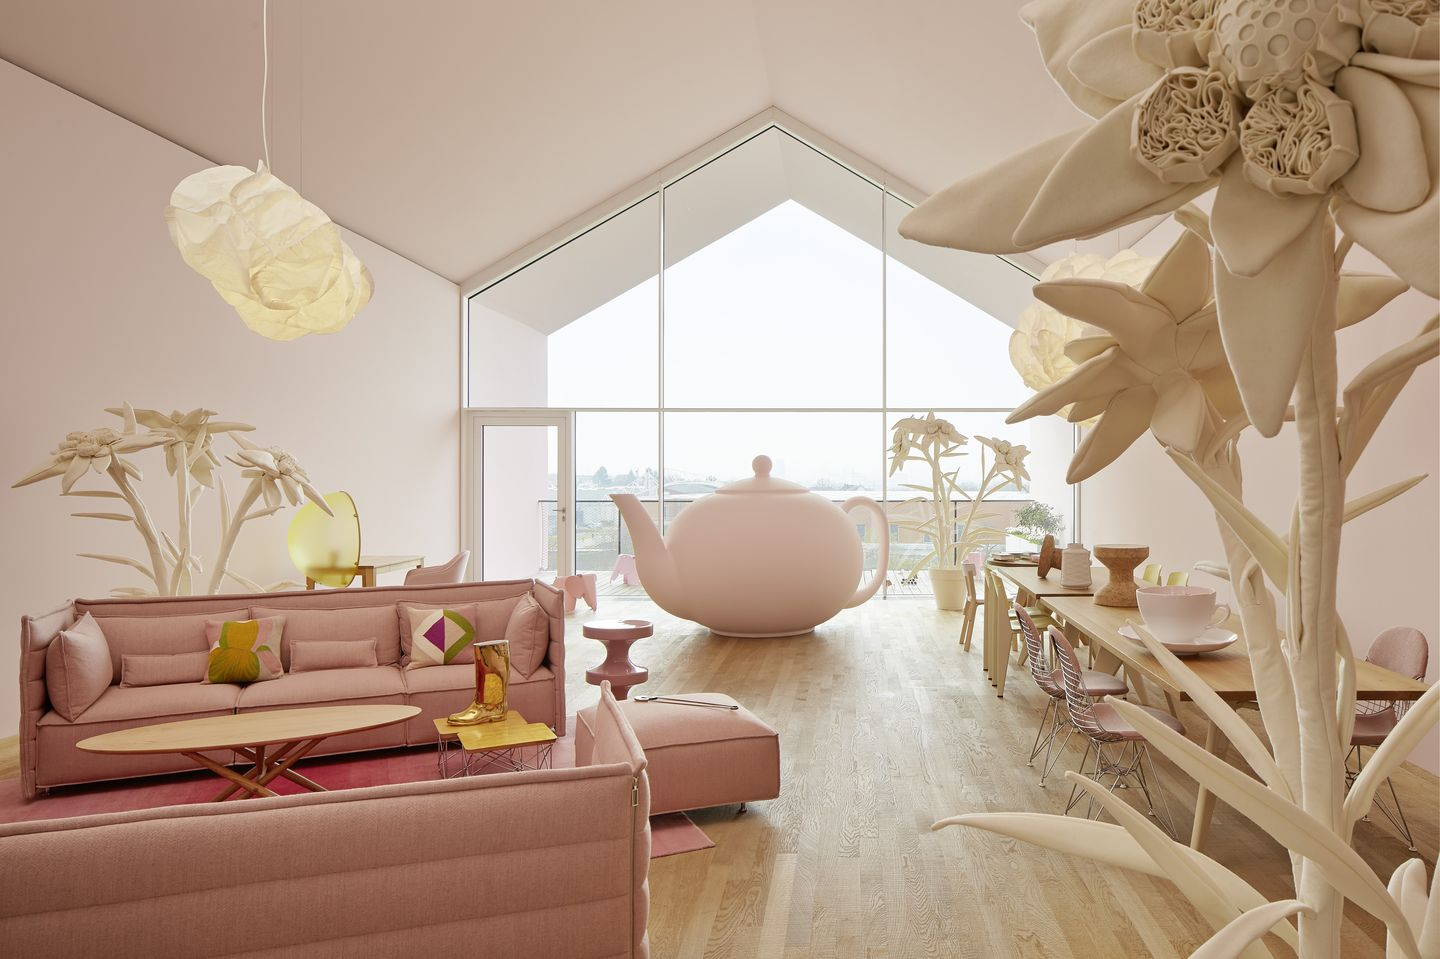 India Mahdavi Transforms The Loft Into Aliceu0027s Wonderland